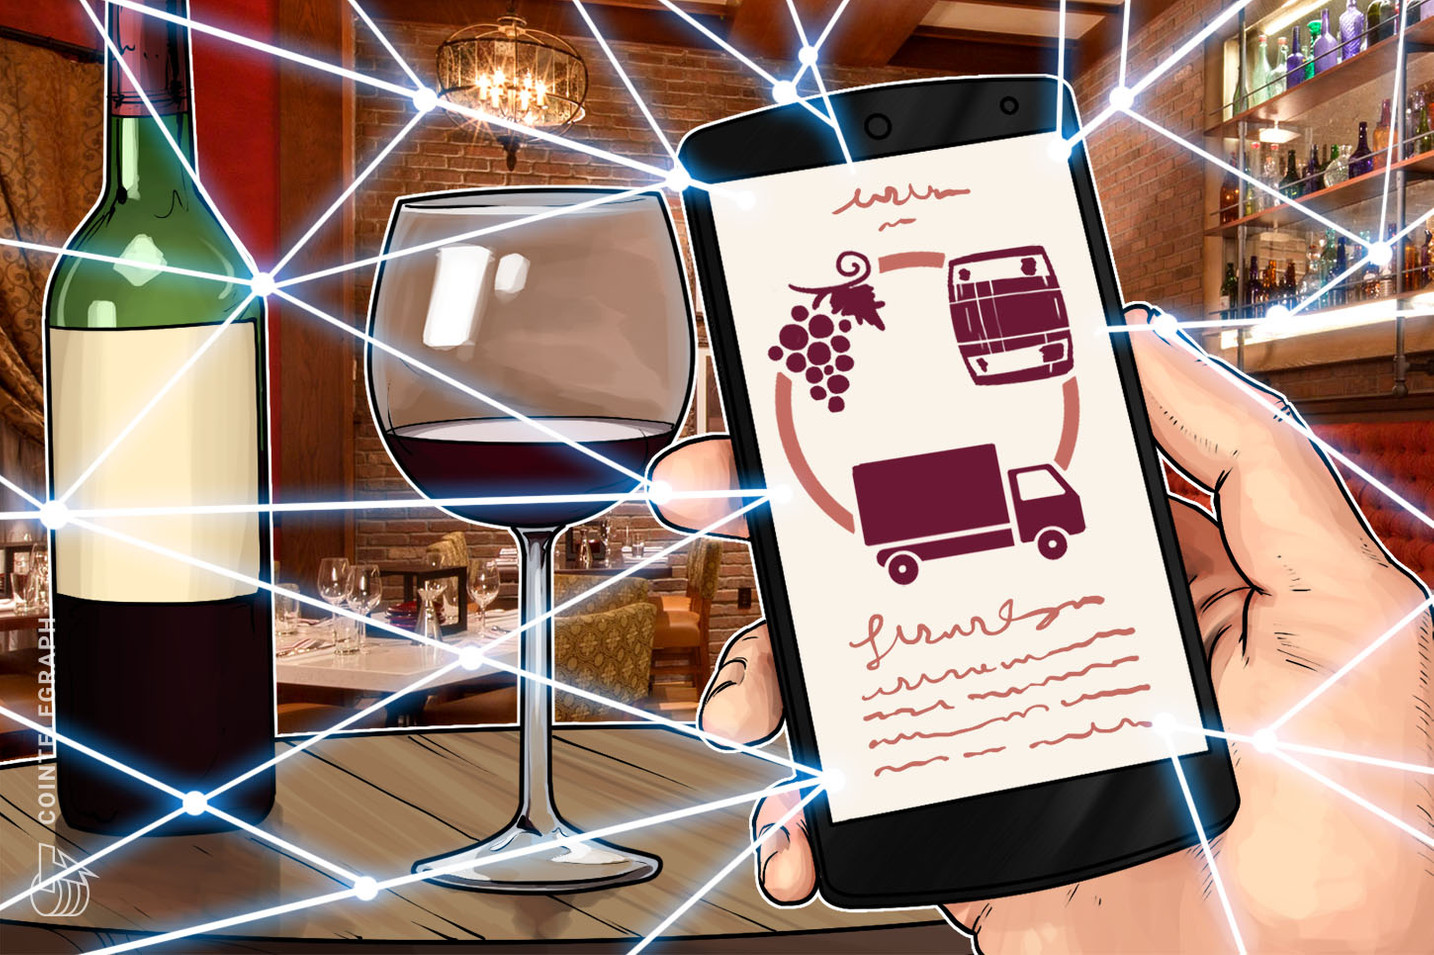 Big Four Auditor EY Provides Blockchain Solution for New Wine Traceability Platform